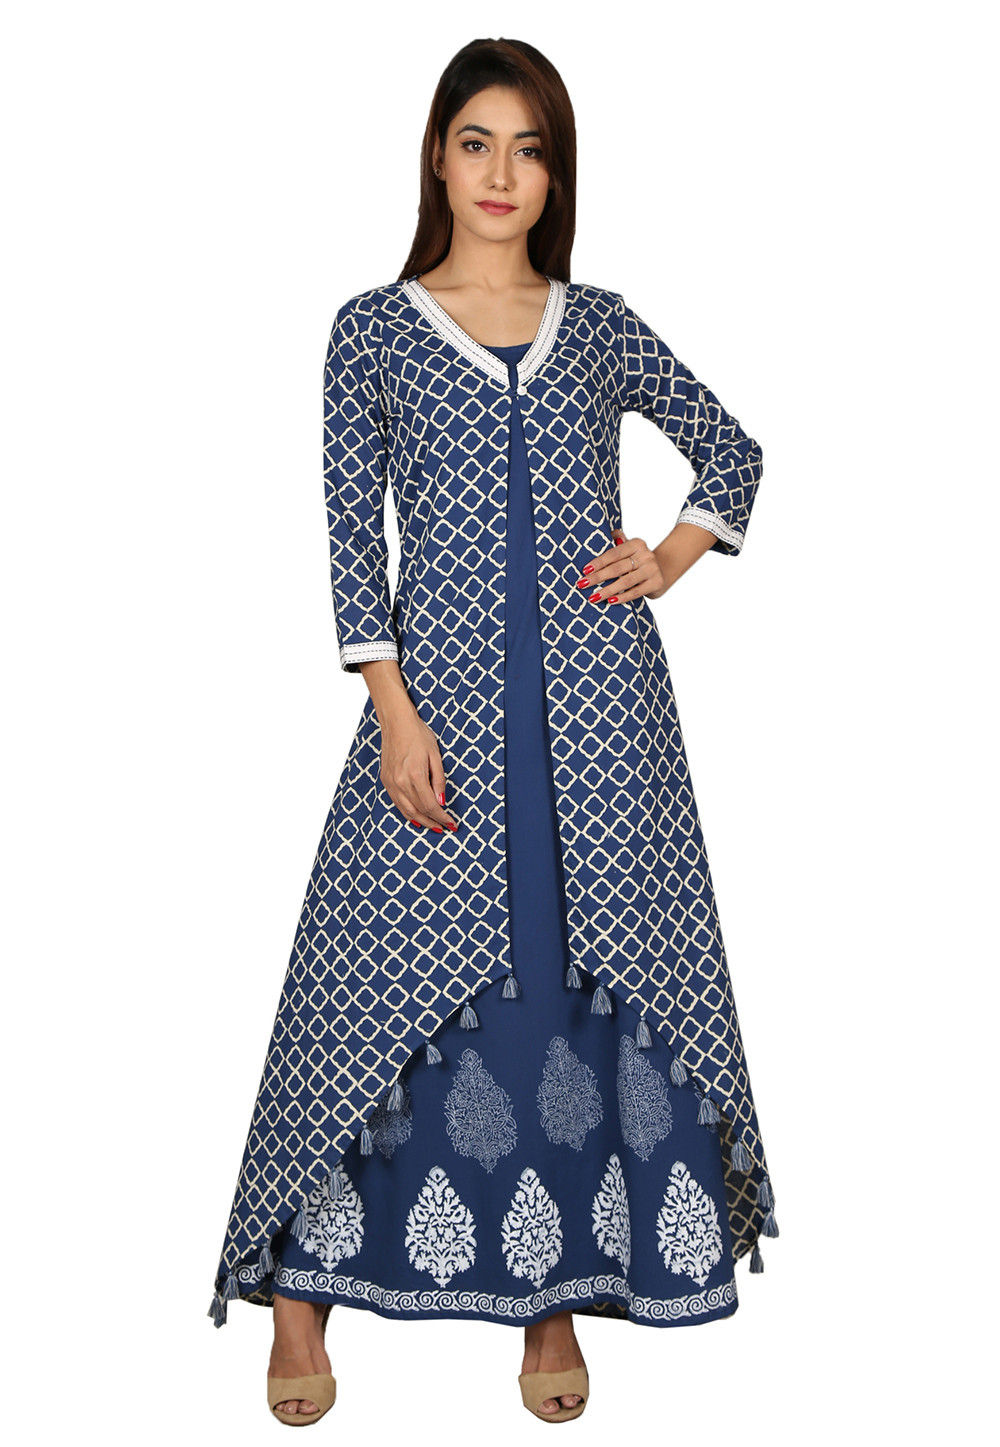 Printed Cotton Kurta with Jacket in Navy Blue